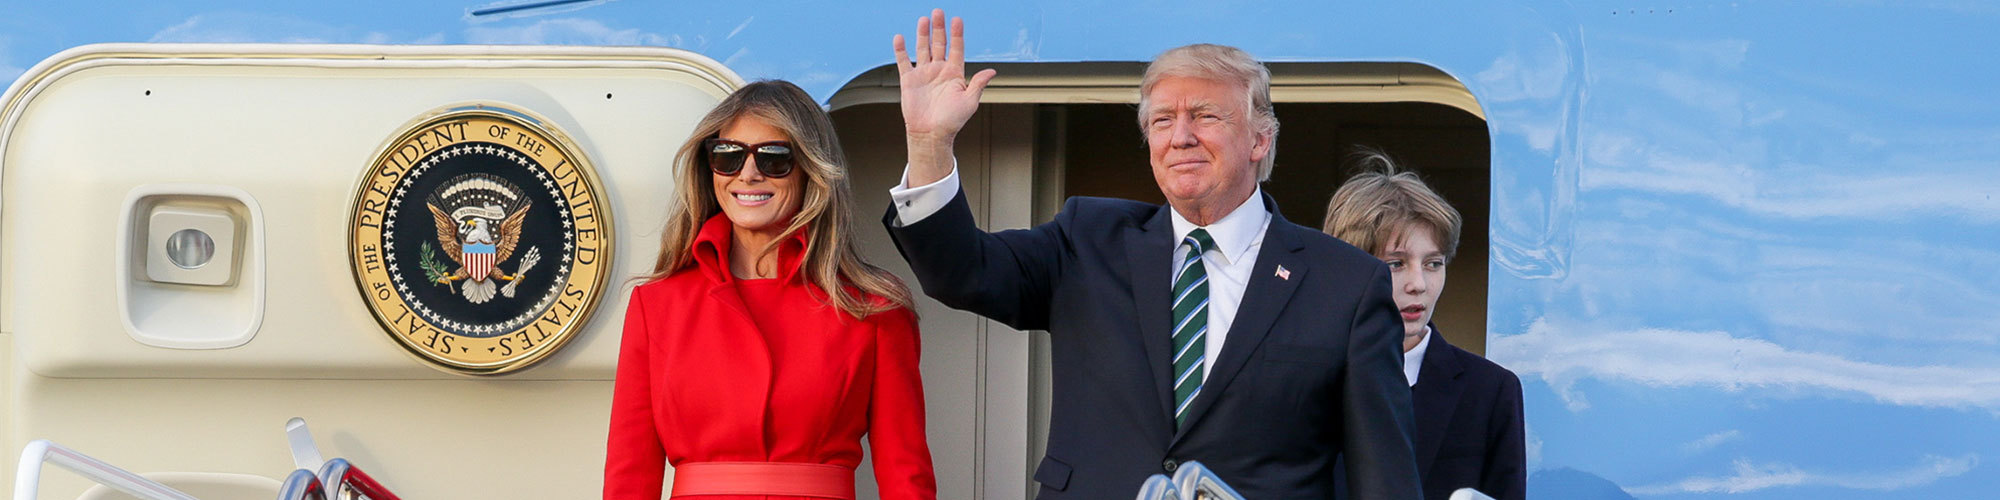 Trump melania header